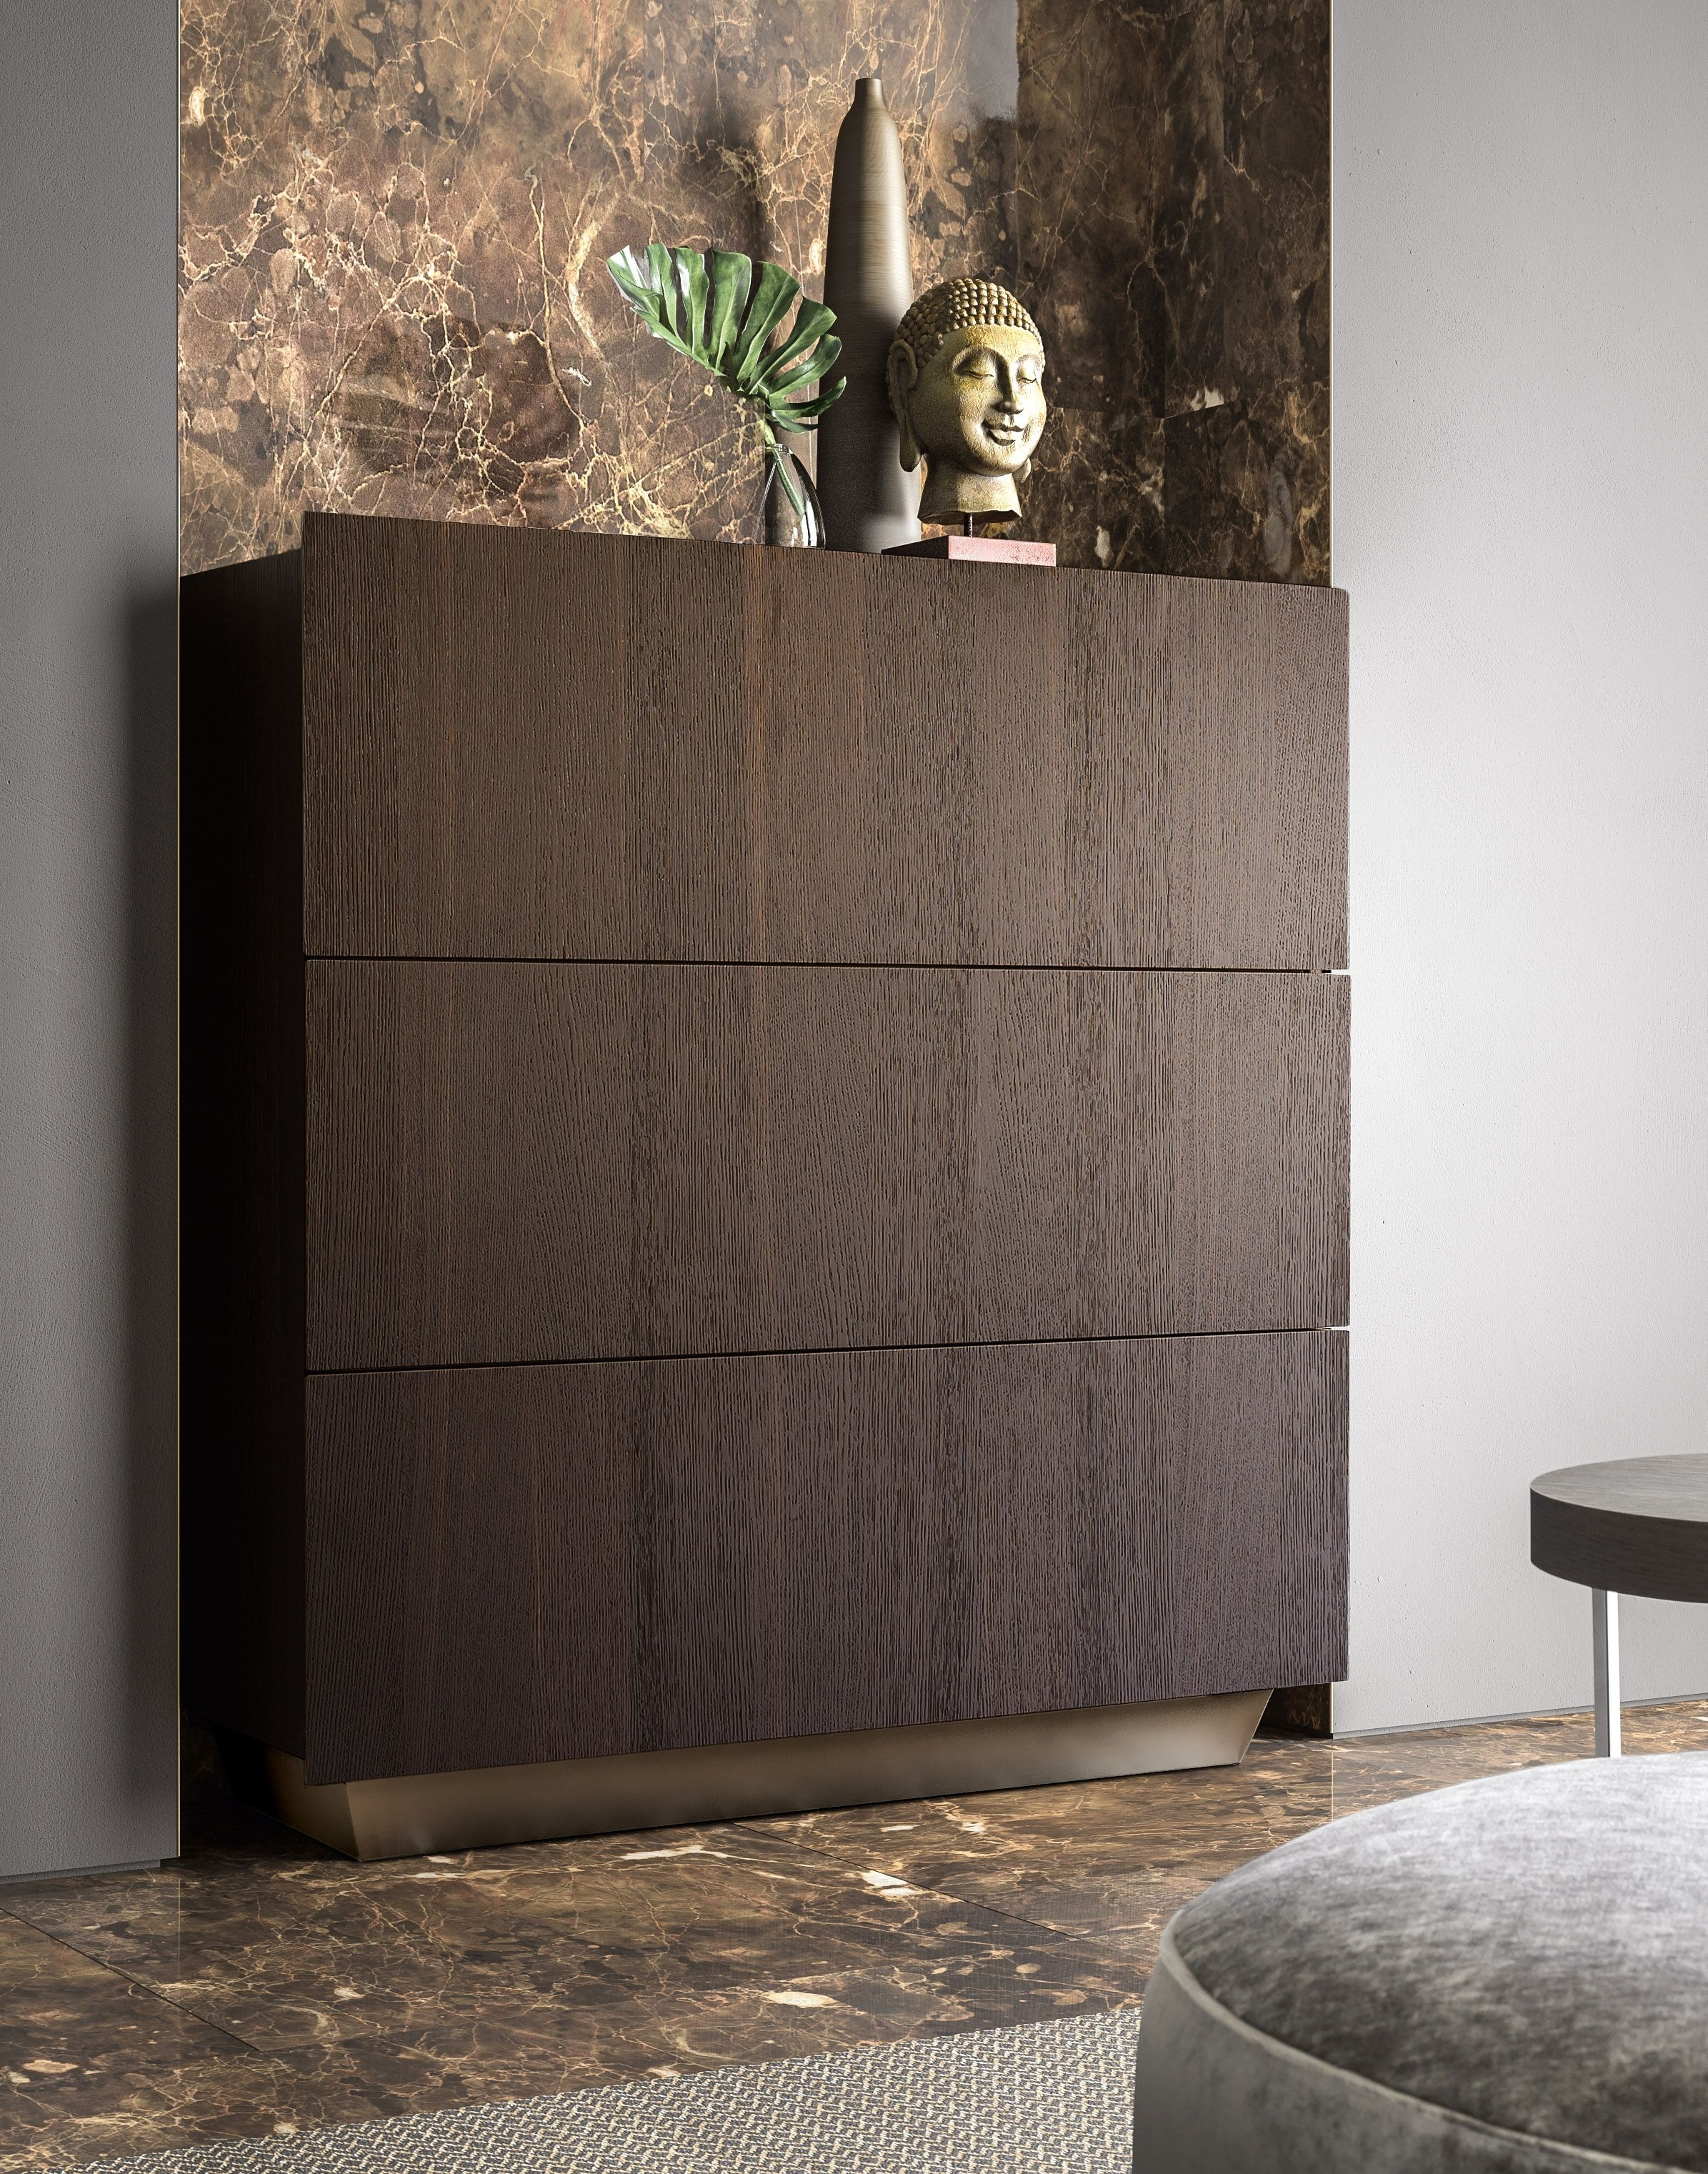 Inspiration about Tosca Sideboard With Burnt Oak Exterior And Bronze Base | Pianca Pertaining To Most Up To Date Black Burnt Oak Sideboards (#6 of 20)